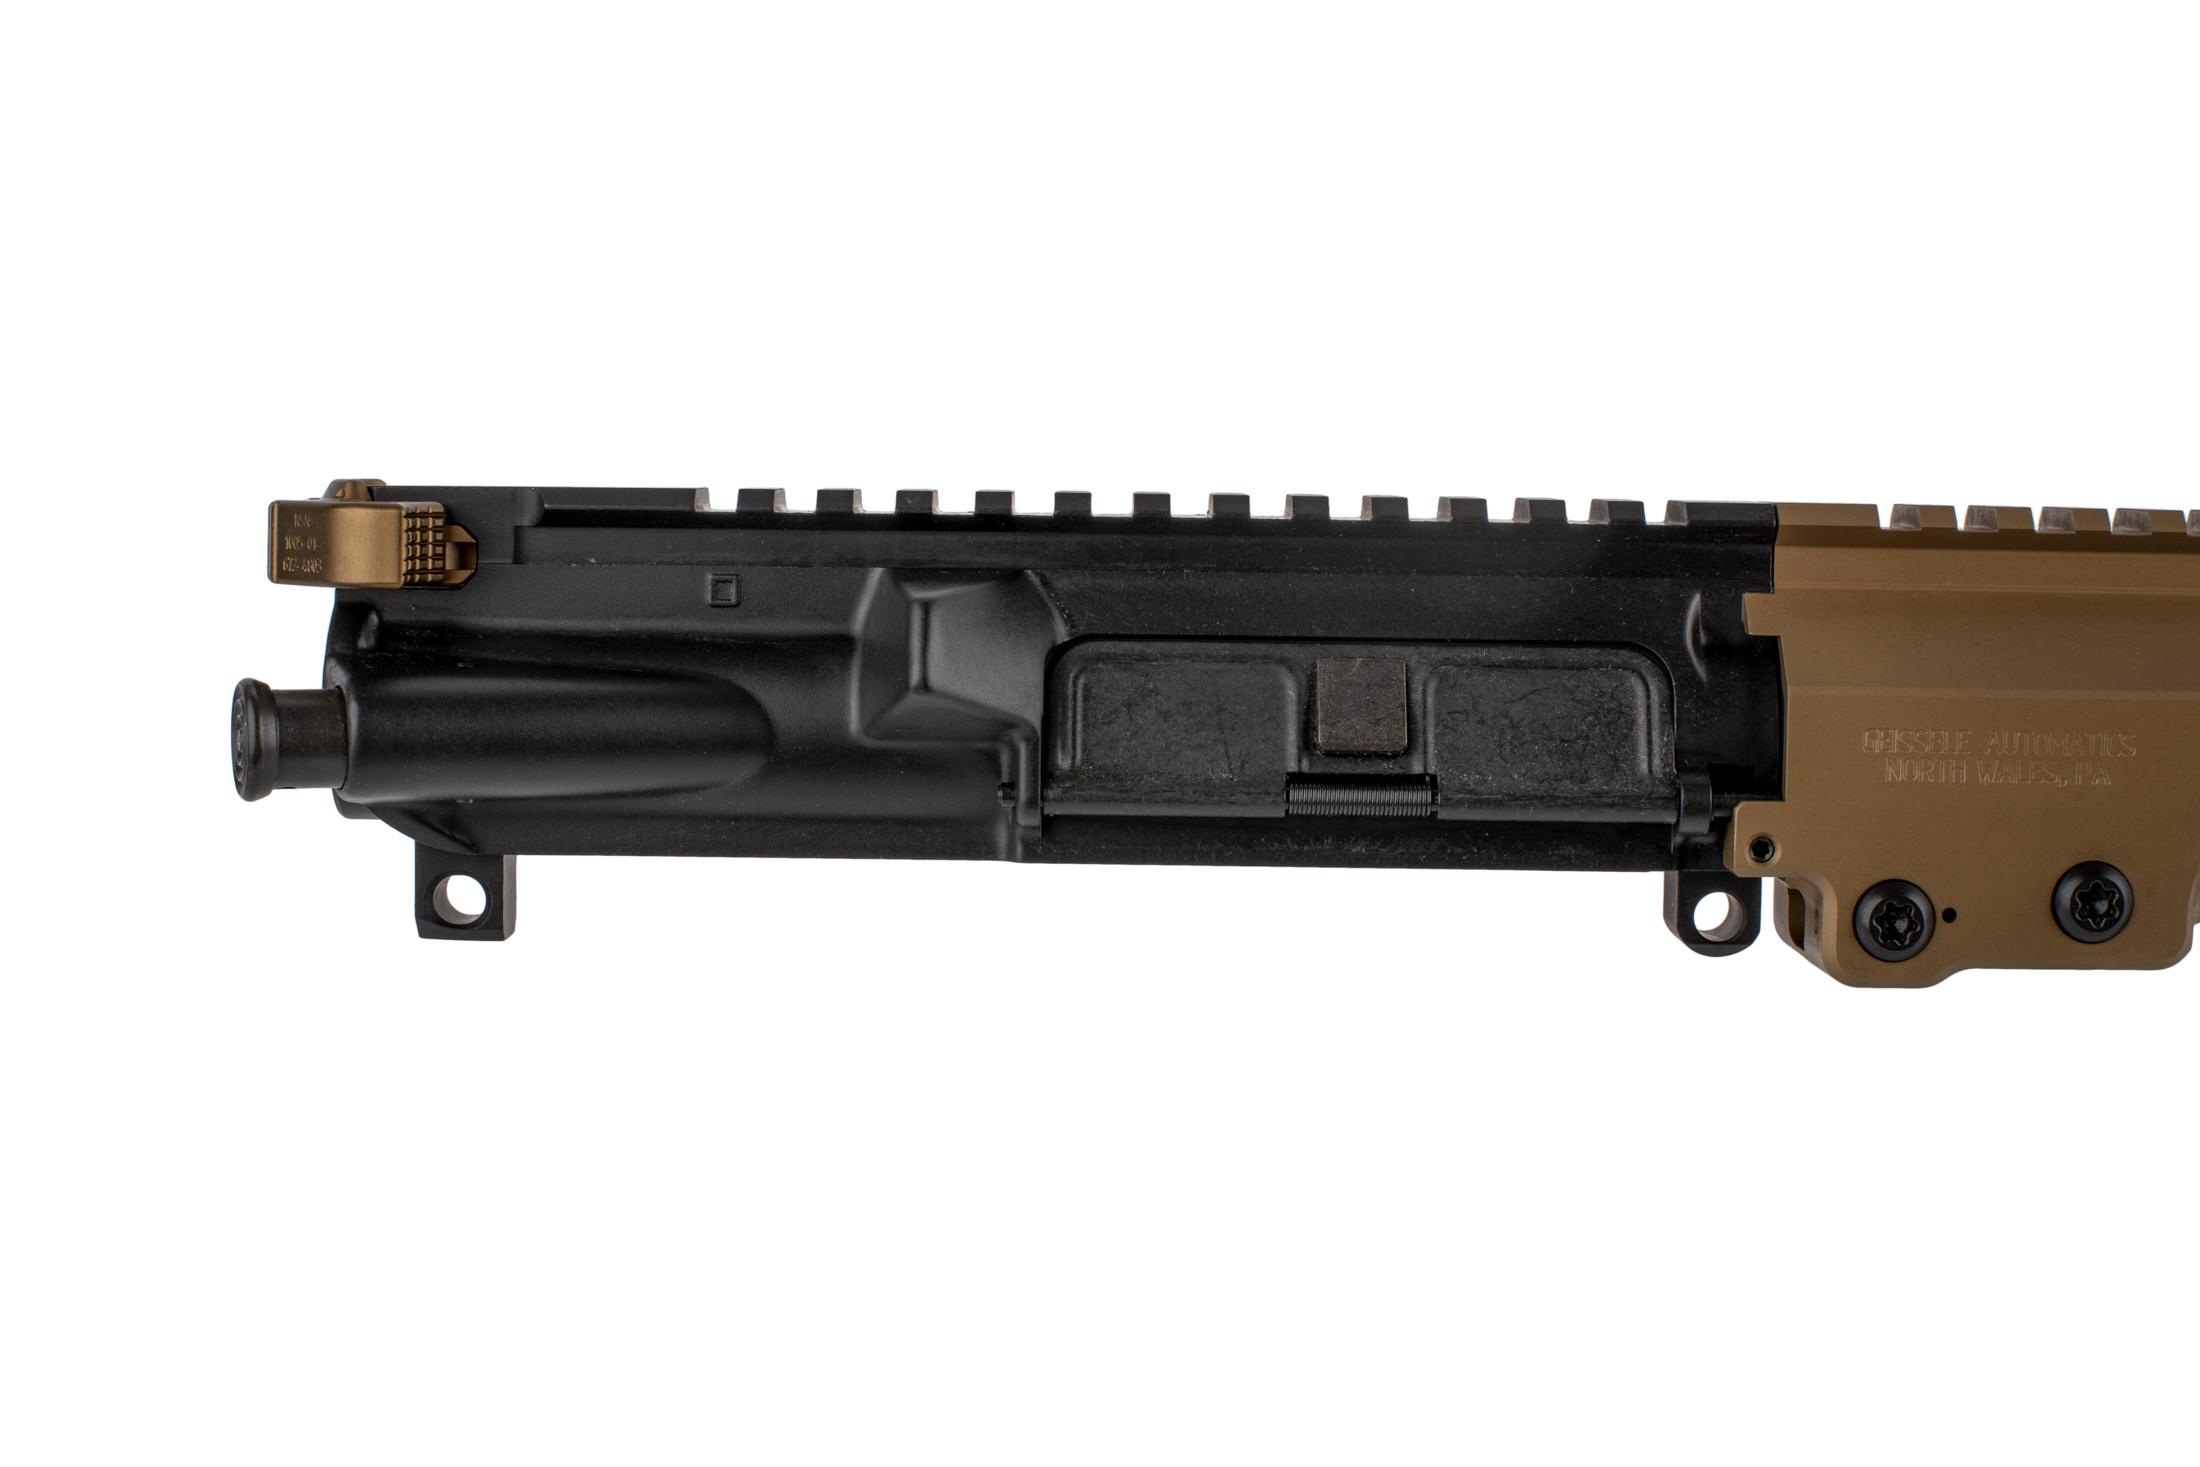 The Geissele AR15 URGI features a Mil-Spec M4 flat top upper receiver